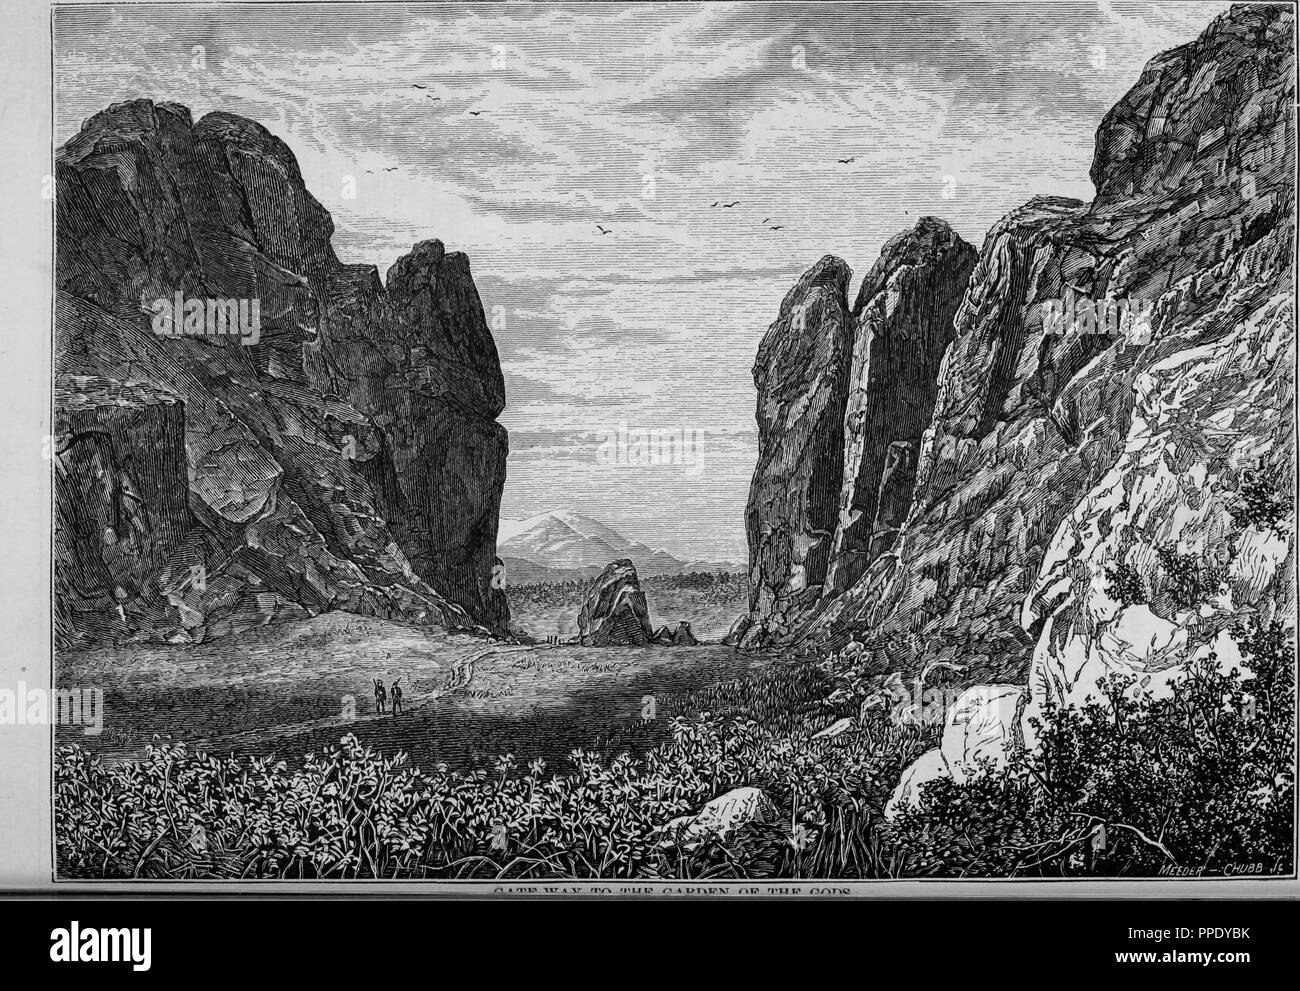 Engraving of the gateway to the Garden of the Gods, from the book 'The Pacific tourist', 1877. Courtesy Internet Archive. () - Stock Image